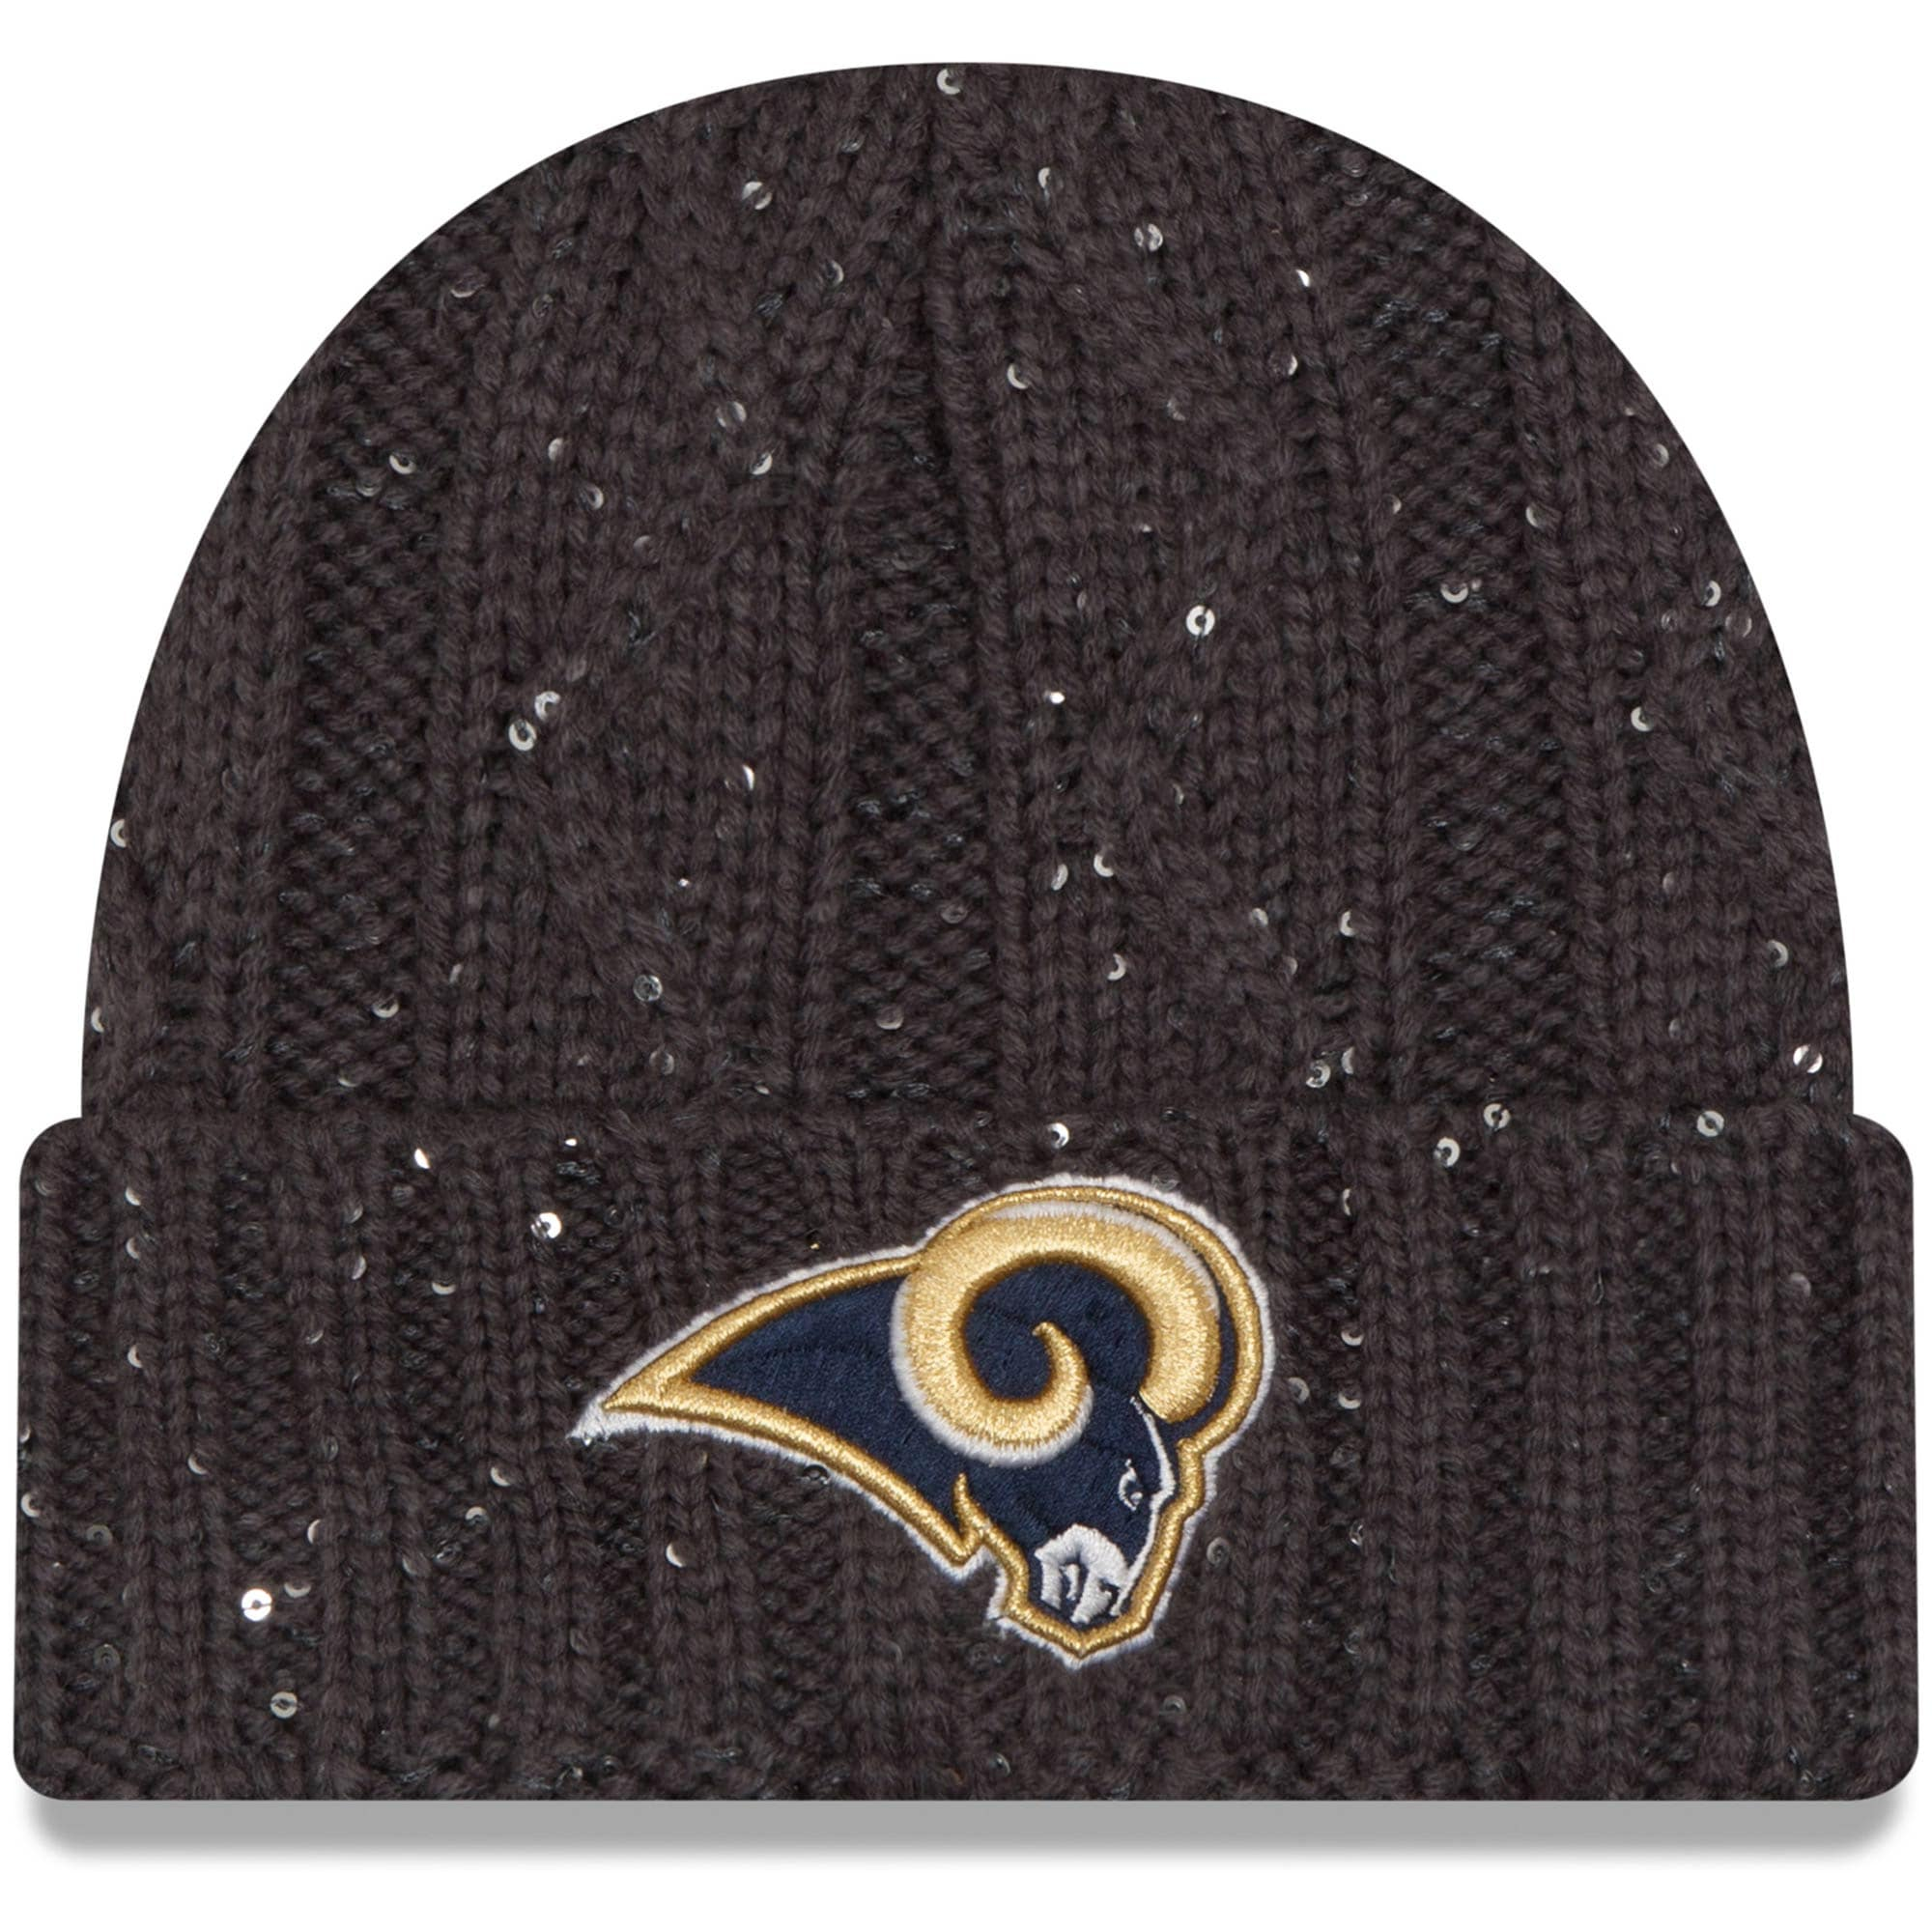 Los Angeles Rams New Era Women's Cable Frosted Cuffed Knit Hat - Graphite